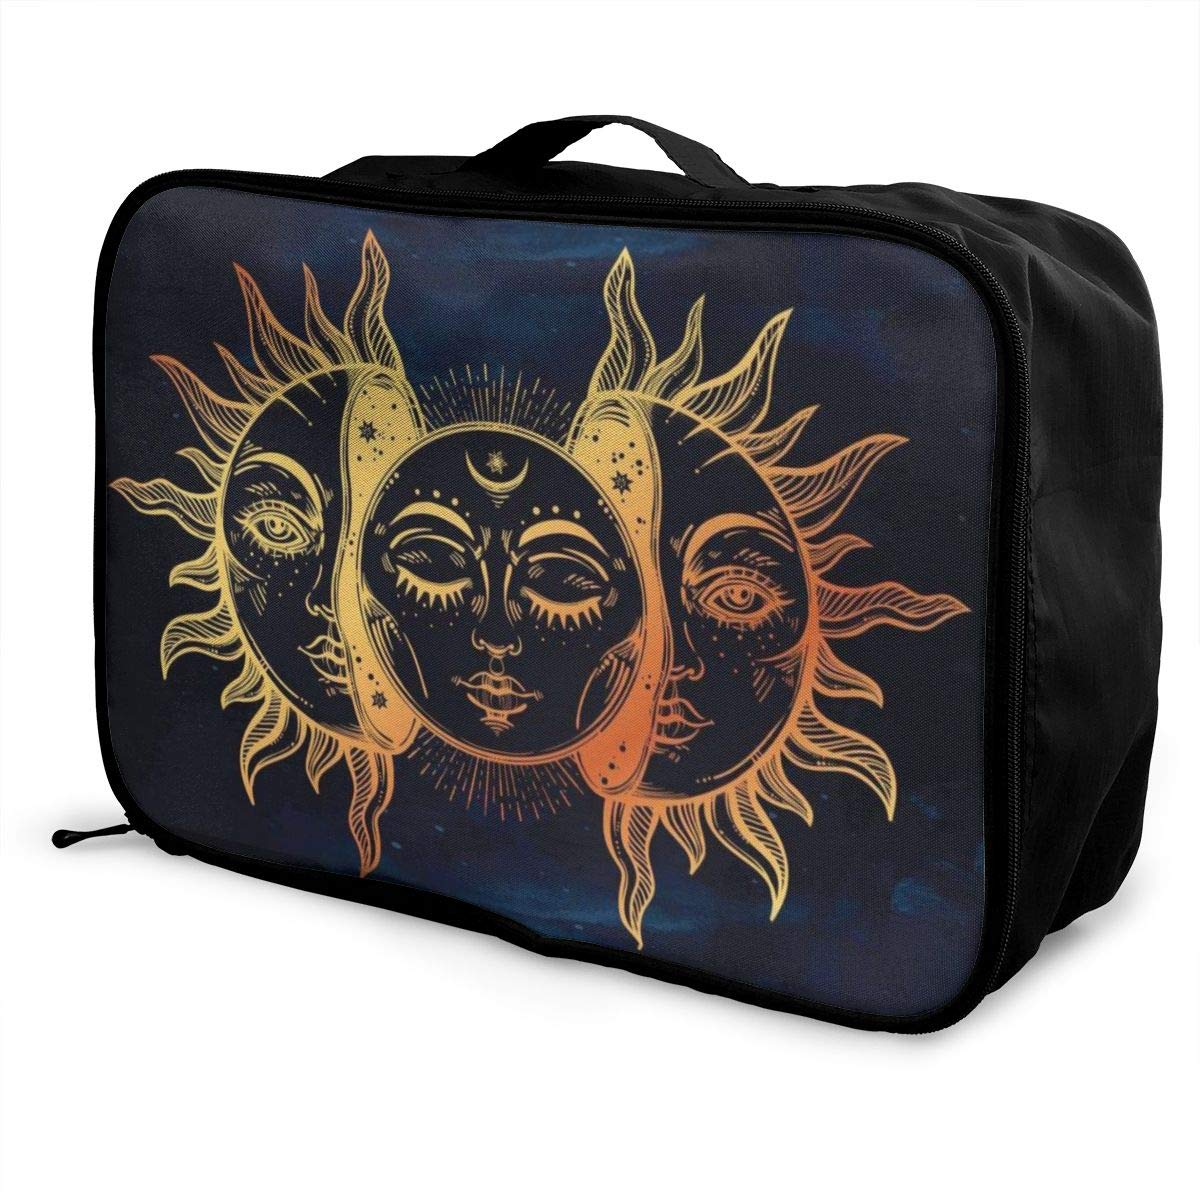 Vintage Sun And Moon Solar Eclipse Travel Lightweight Waterproof Foldable Storage Carry Luggage Duffle Tote Bag Large Capacity In Trolley Handle Bags 6x11x15 Inch